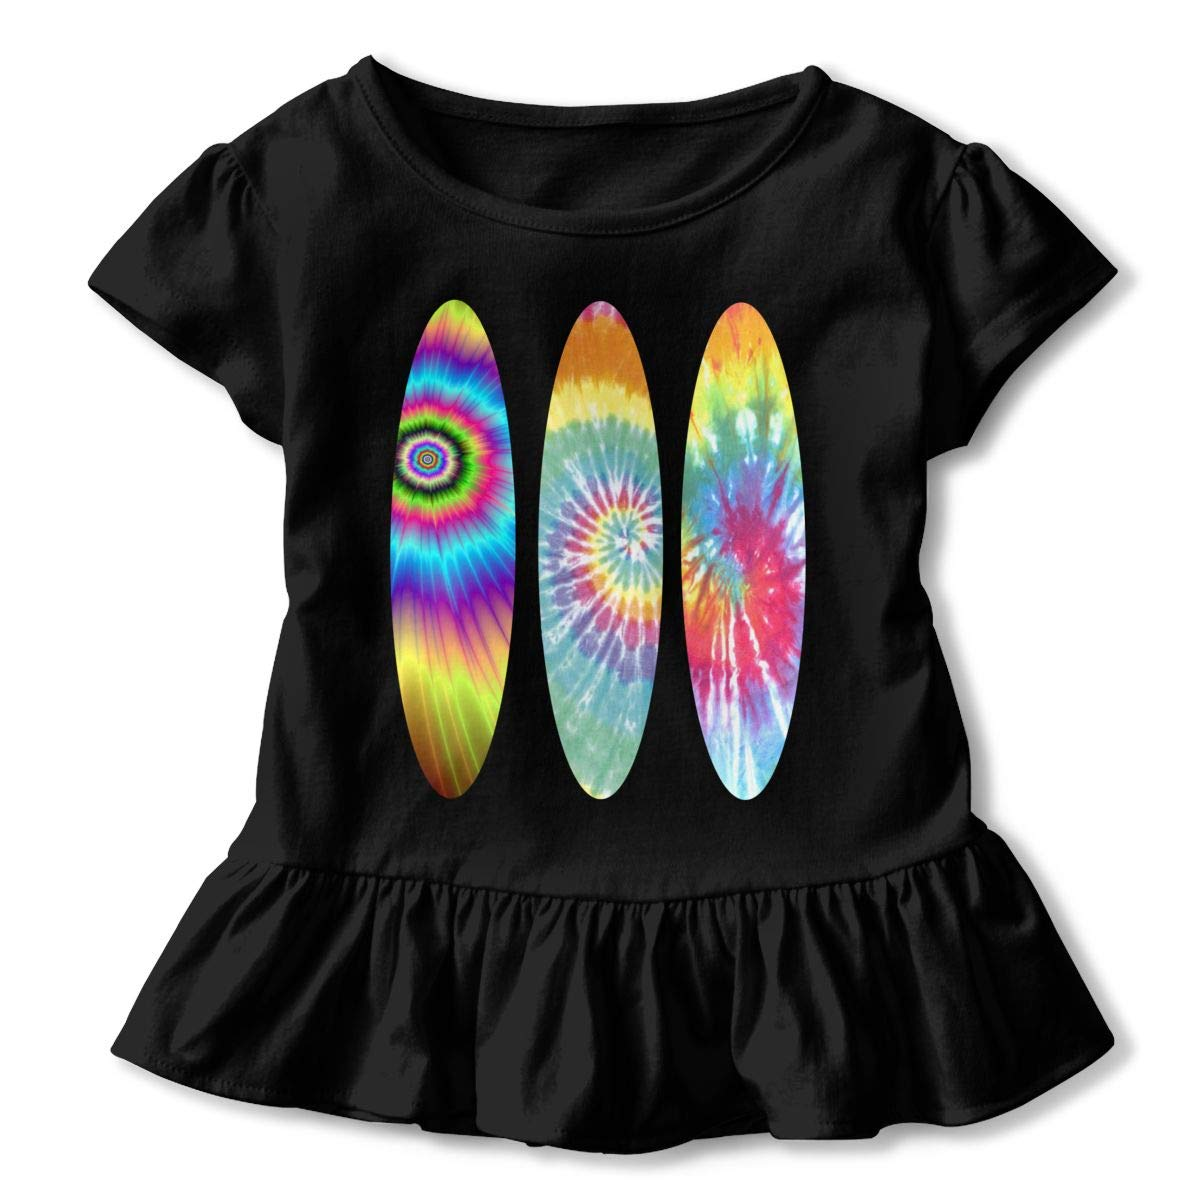 CZnuen Tie Dye Sailboat Baby Girls Basic Short Puff Sleeve Round Neck Ruffle T-Shirt